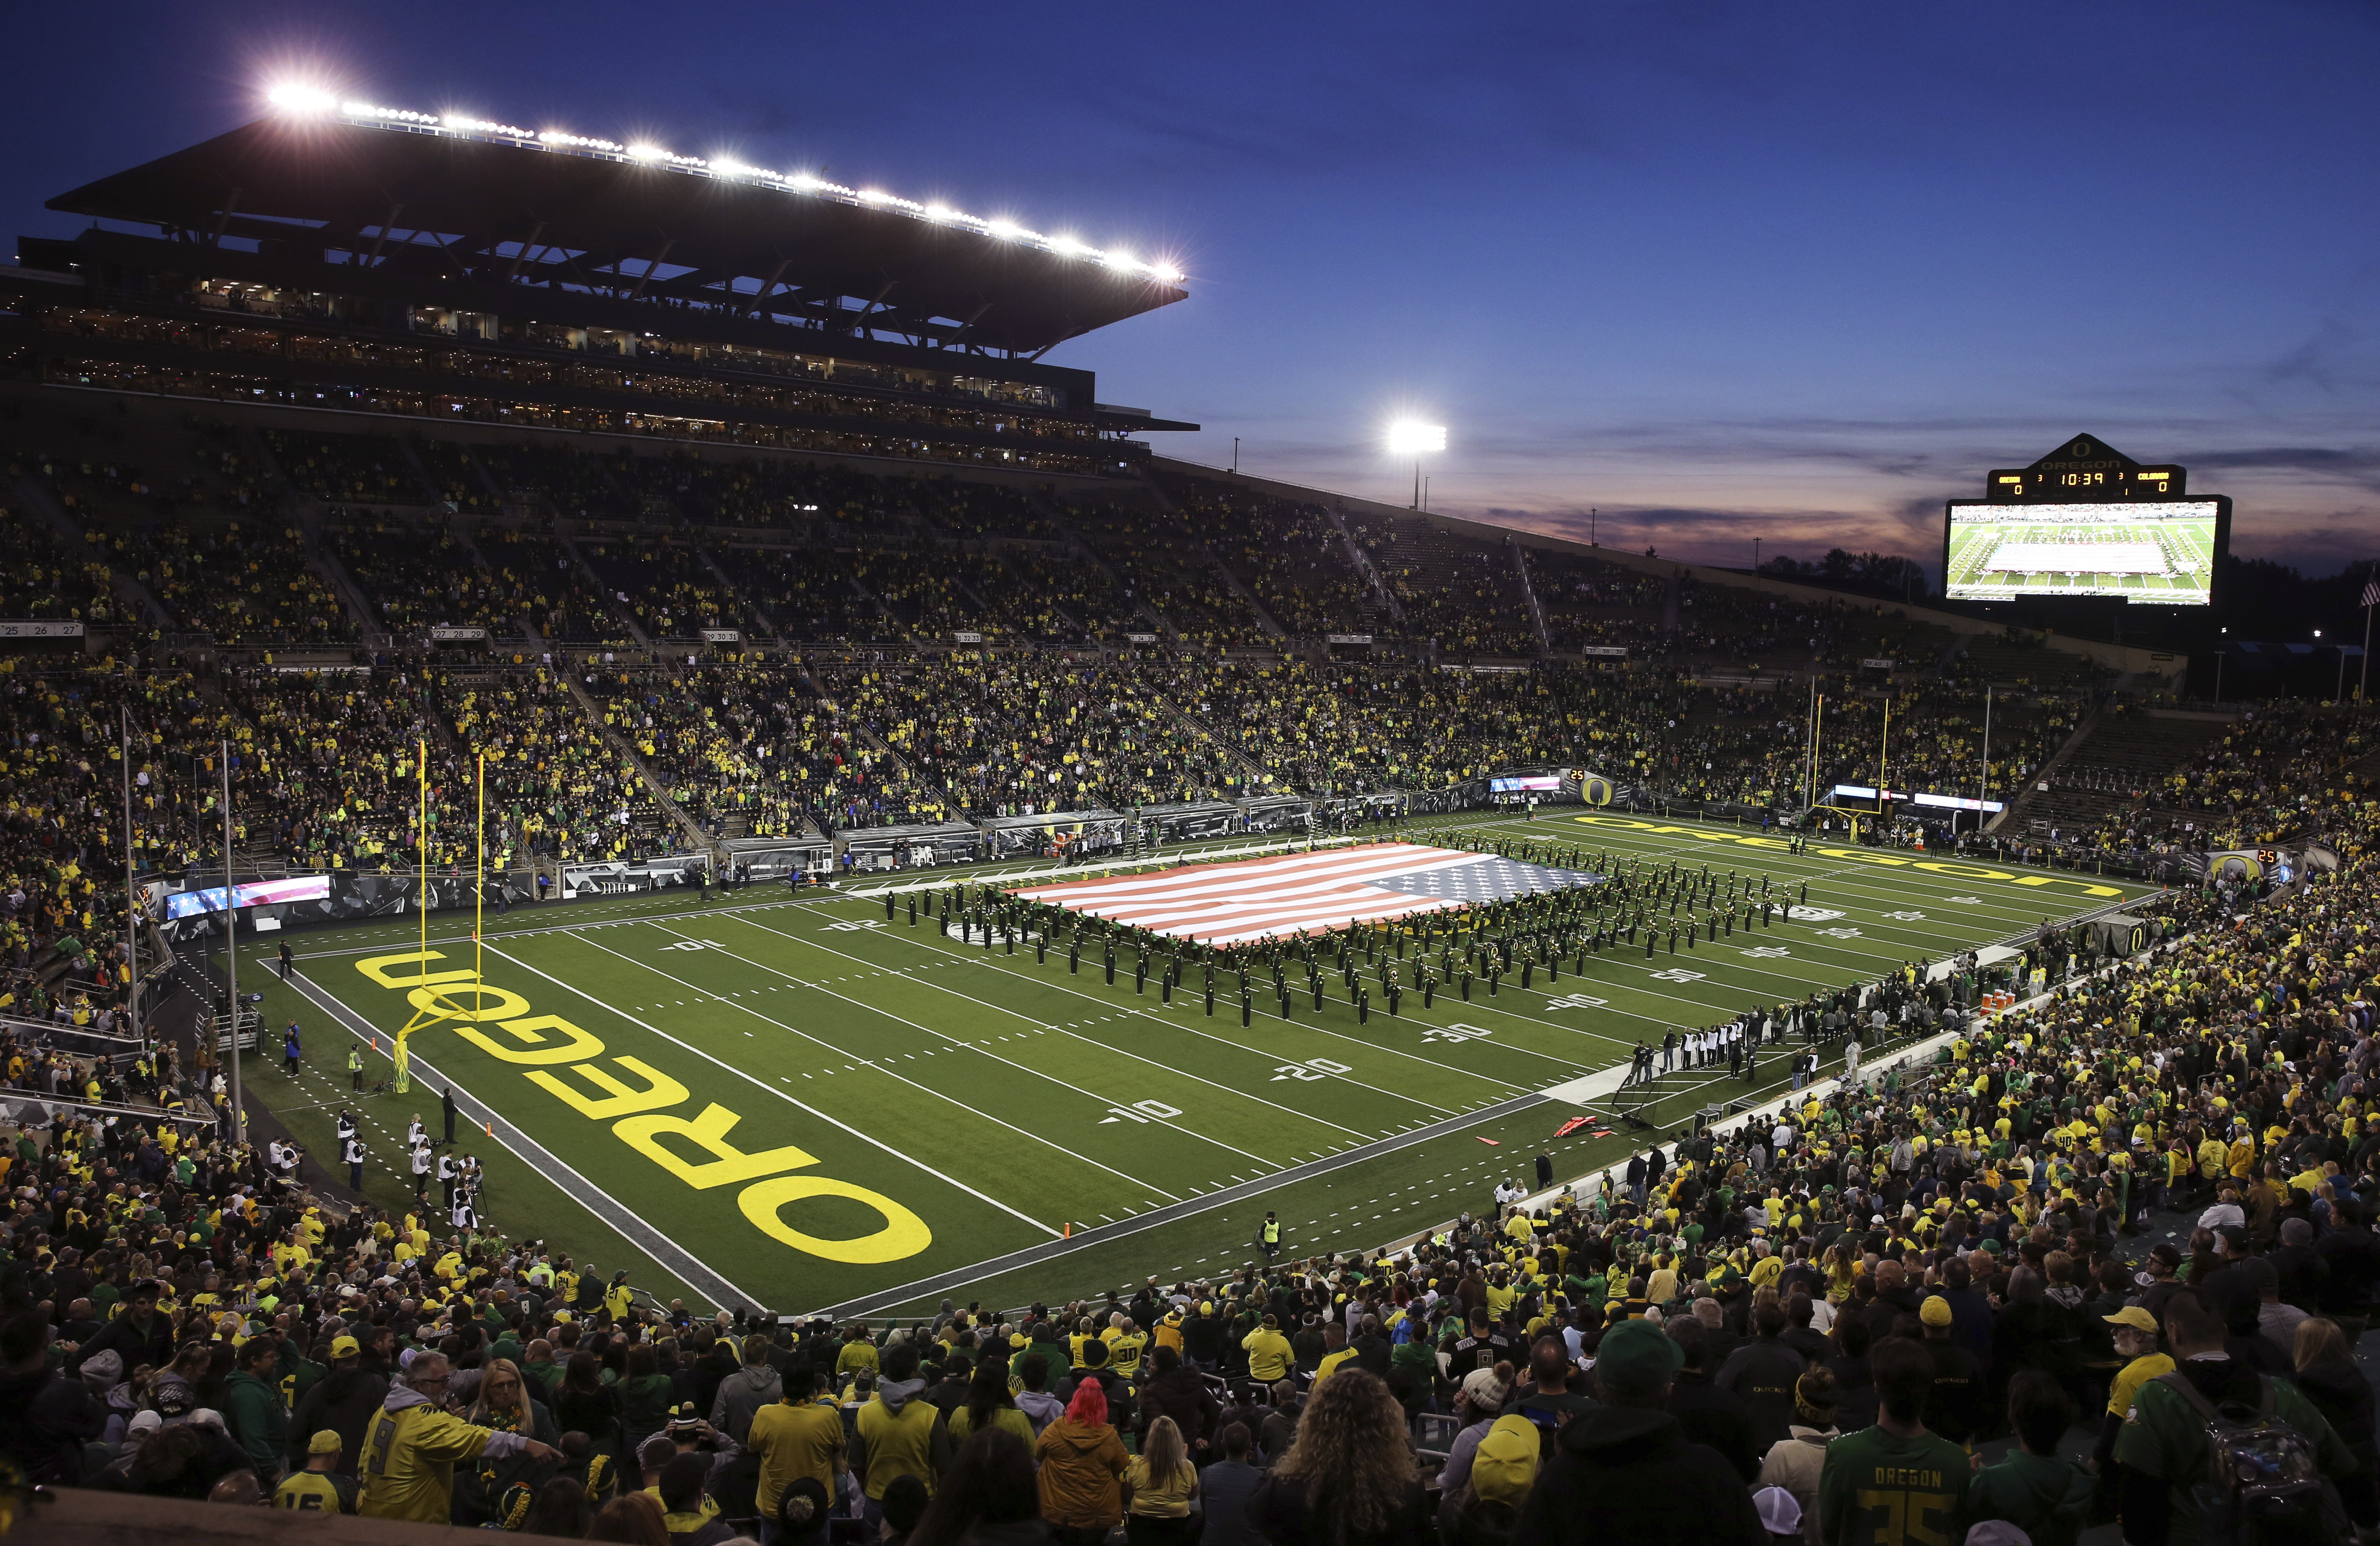 The Oregon Marching Band displays a giant U.S. flag on the field at Autzen Stadium before a football game against Colorado.